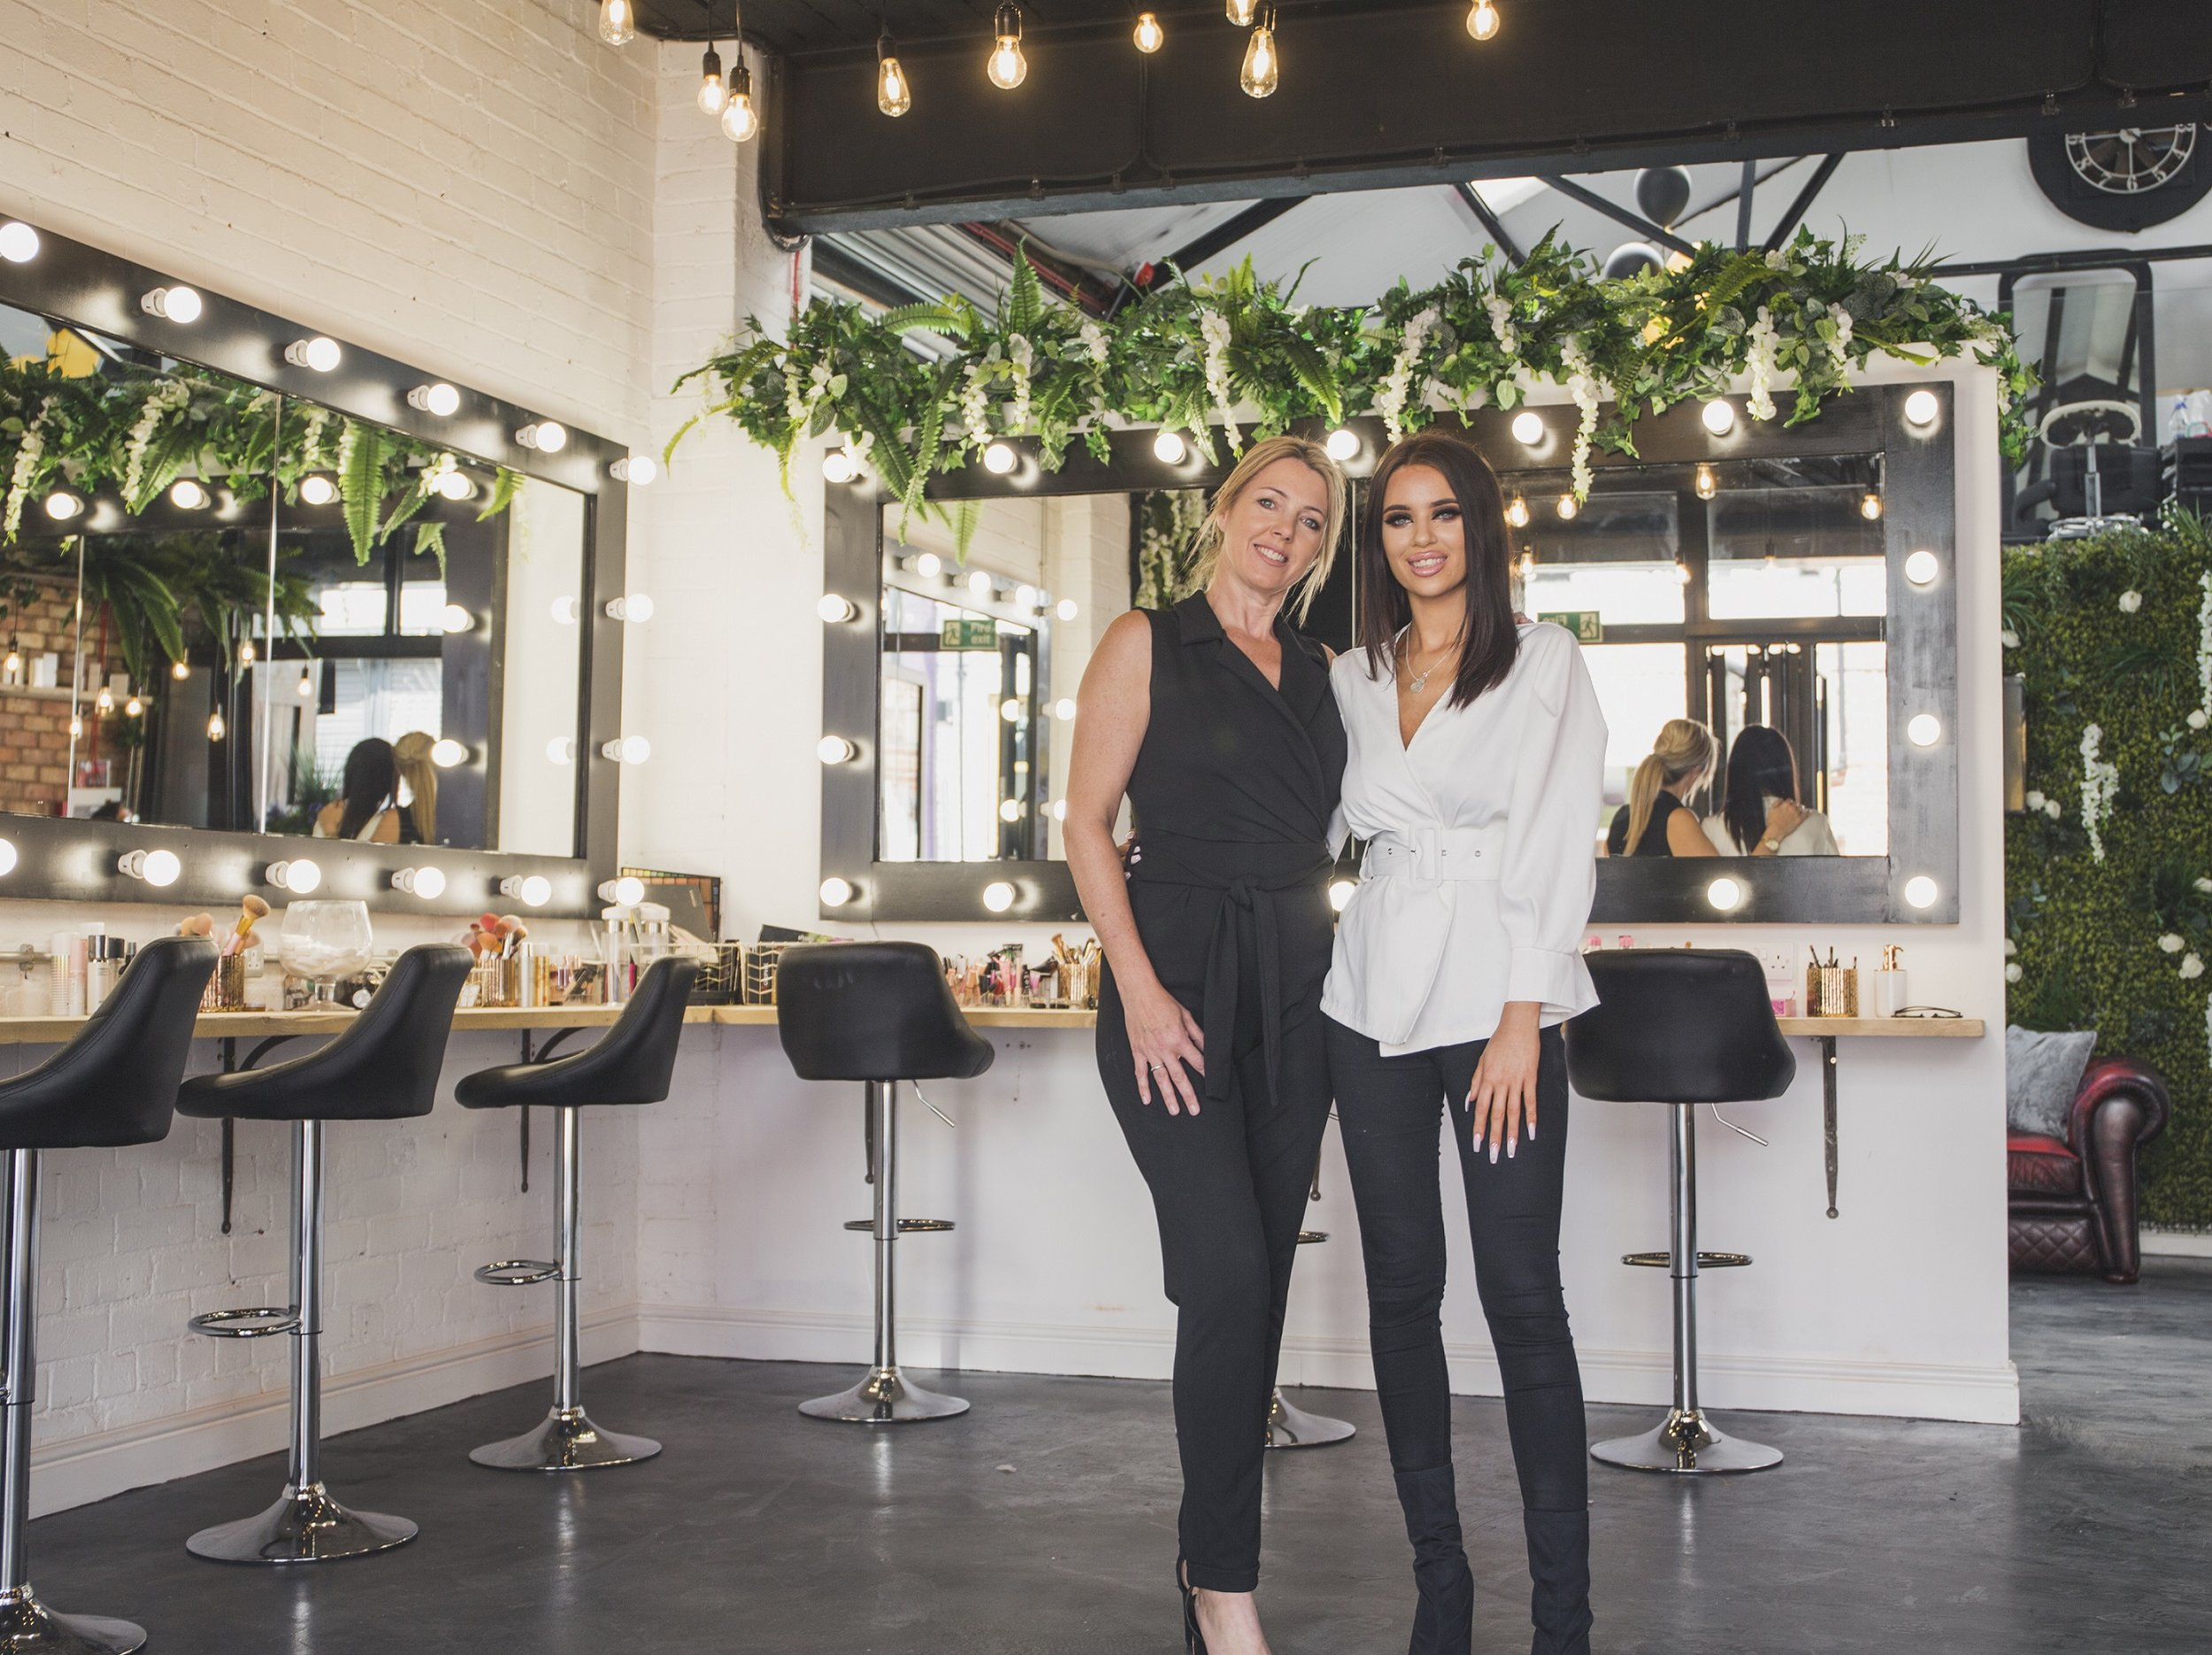 Mother-daughter duo Julie, left, and Zoe Omond have joined forces to launch GH&36 in a renovated warehouse on Humber Street.